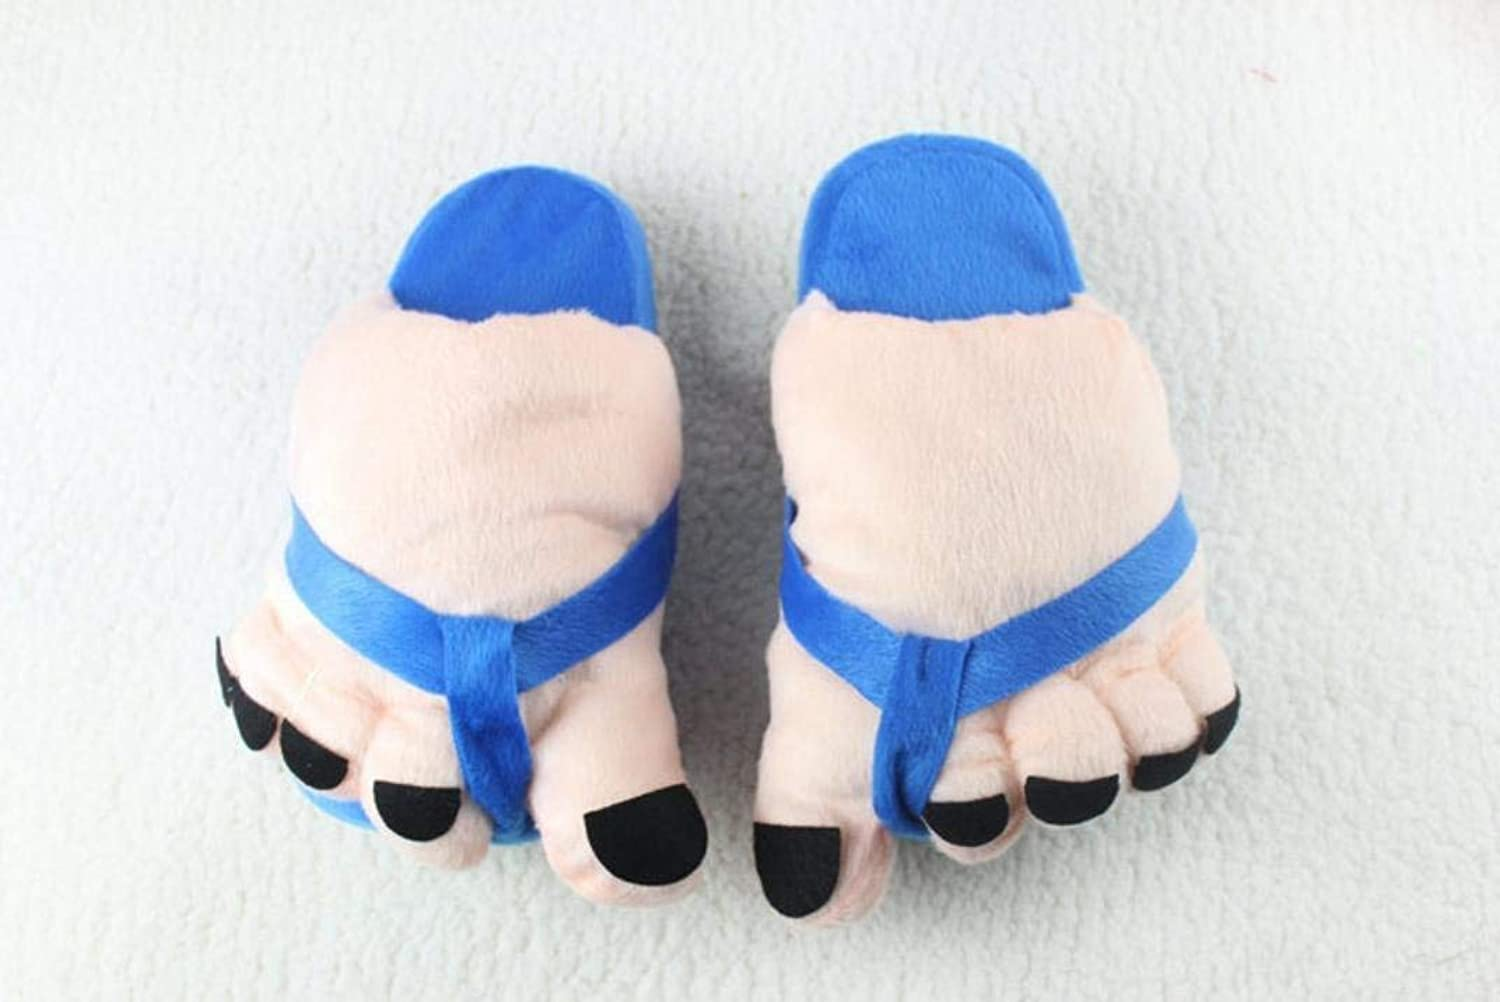 Lady Slippers Ladies Casual Cute Toes Style Appearant Slippers Super Soft Plush Paws Comfortable Special Design Home Leisure Cotton Slippers